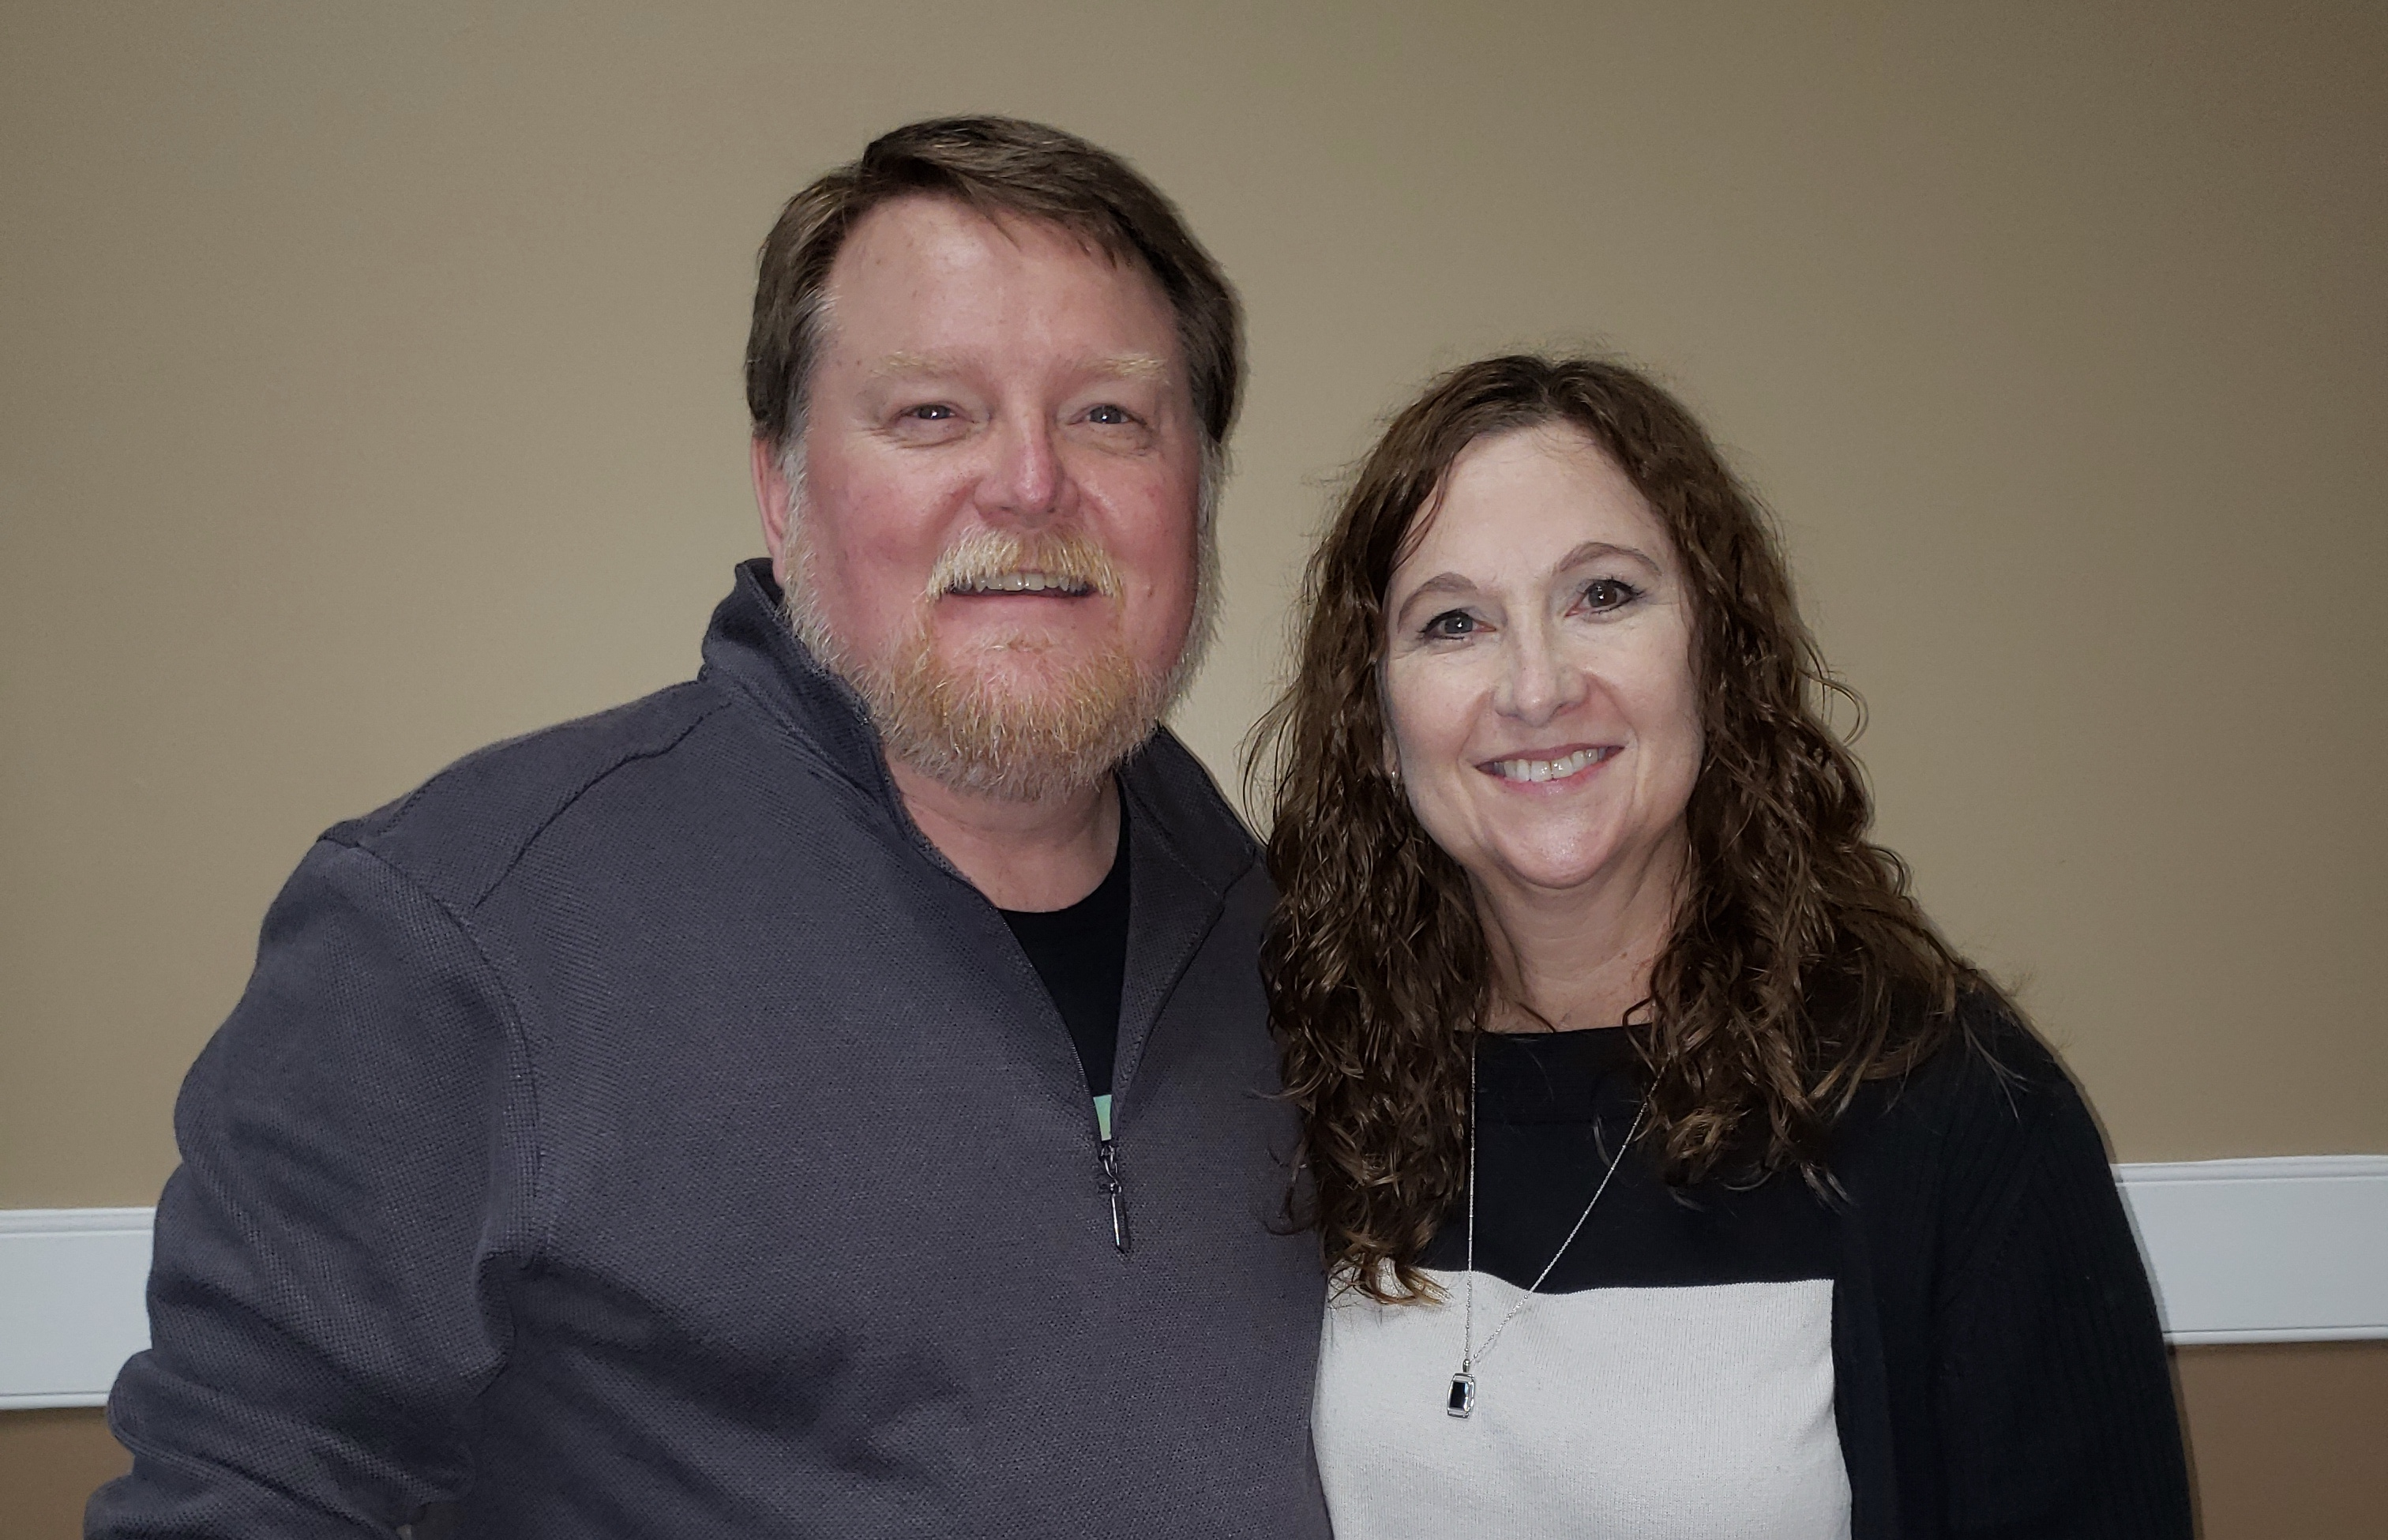 Husband-Wife Children's Pastors minister across nation and world, Part 2: Marcia Irwin Jones